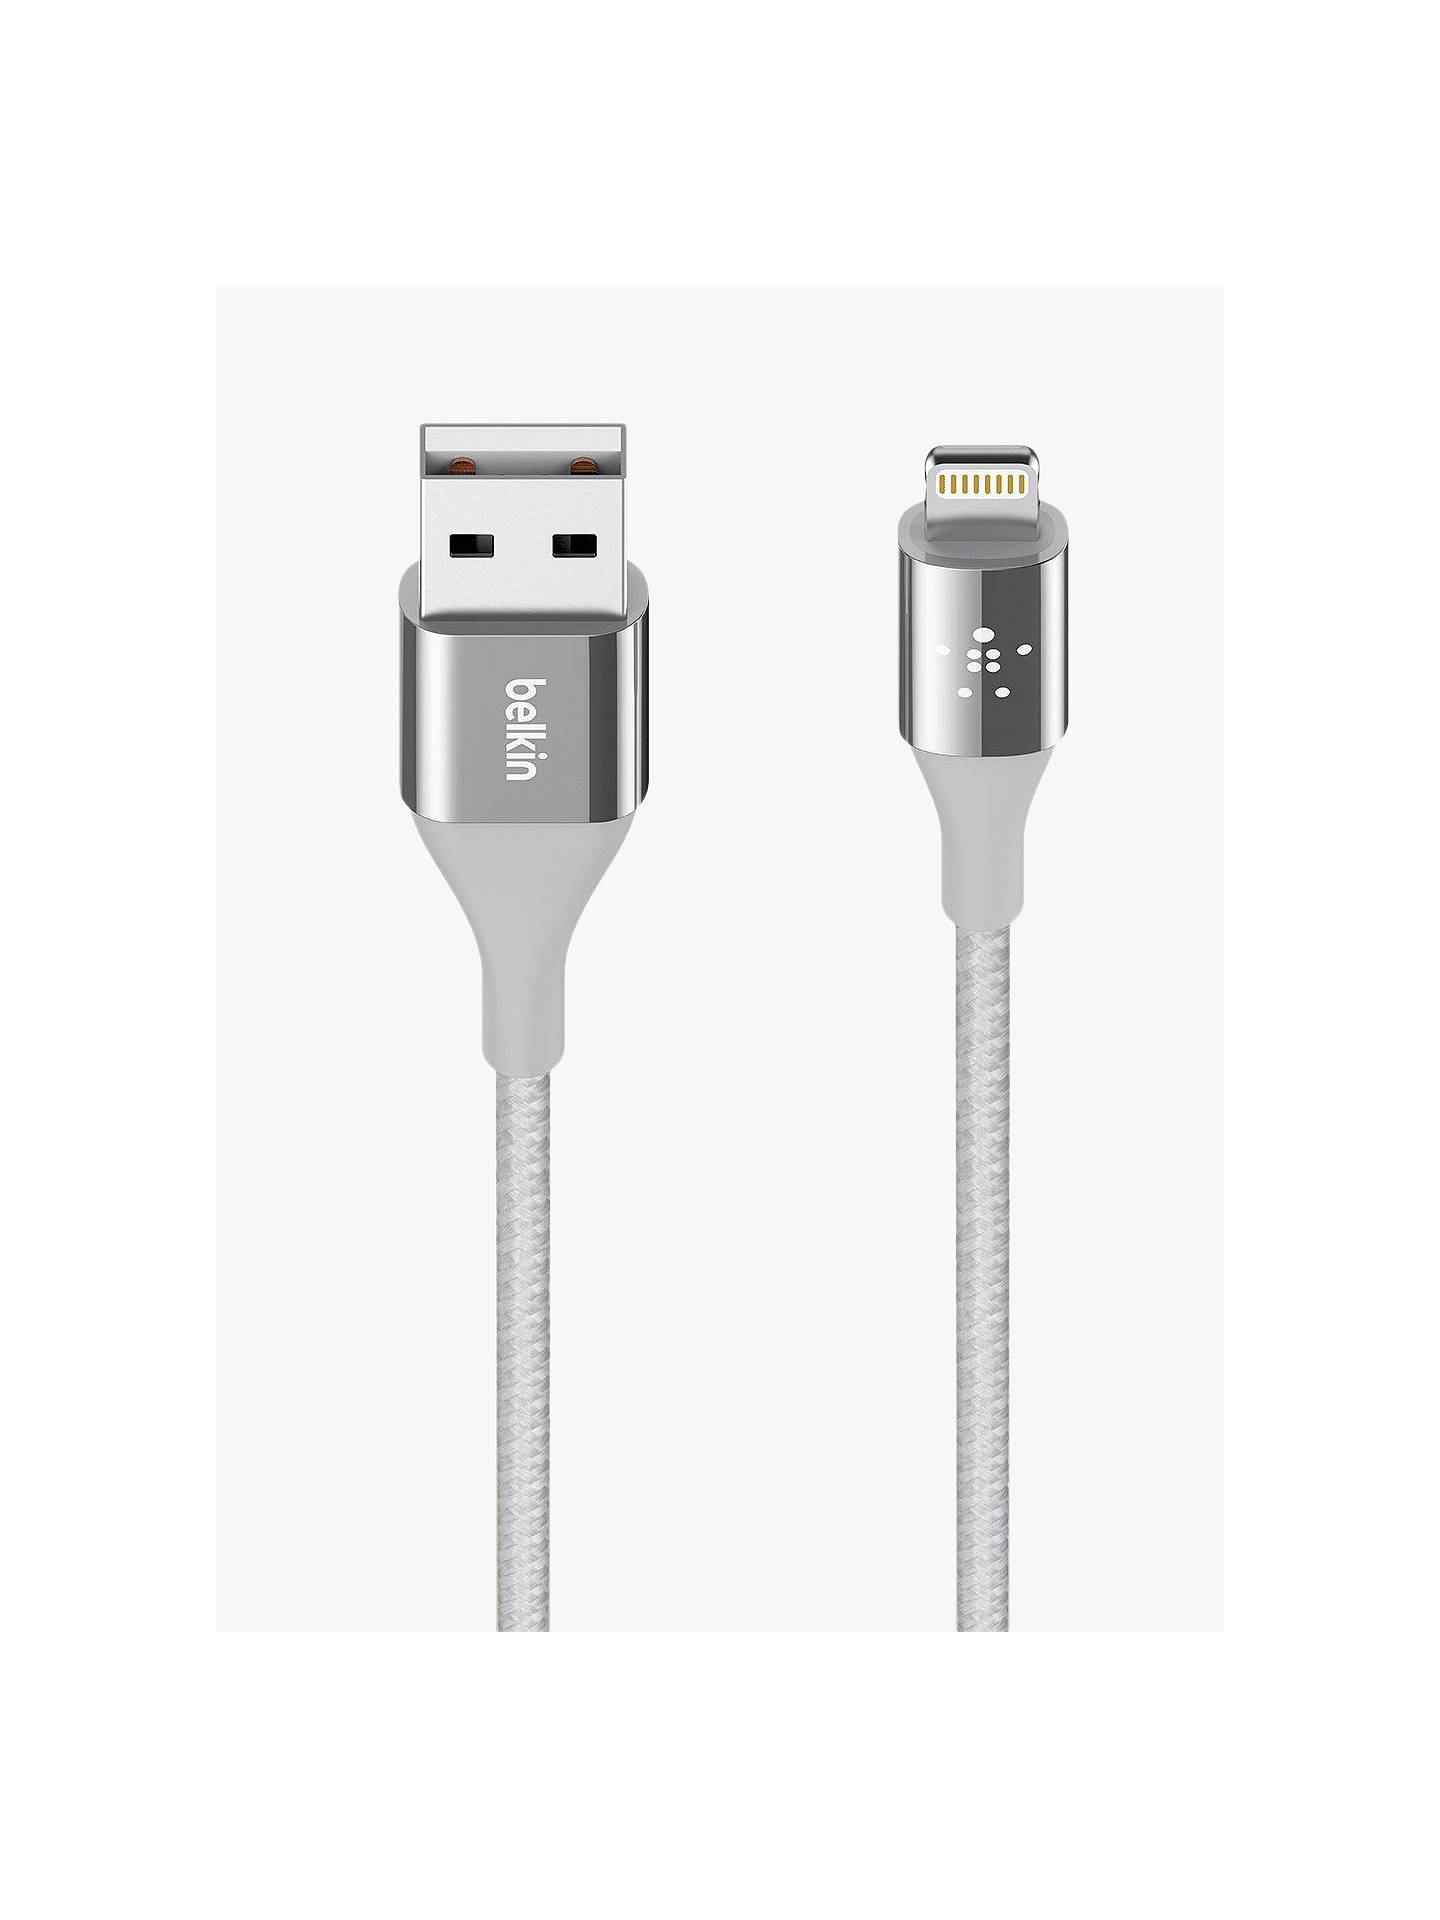 BuyBelkin Mixit DuraTek Lightning to USB Cable, 1.2m, Silver Online at johnlewis.com